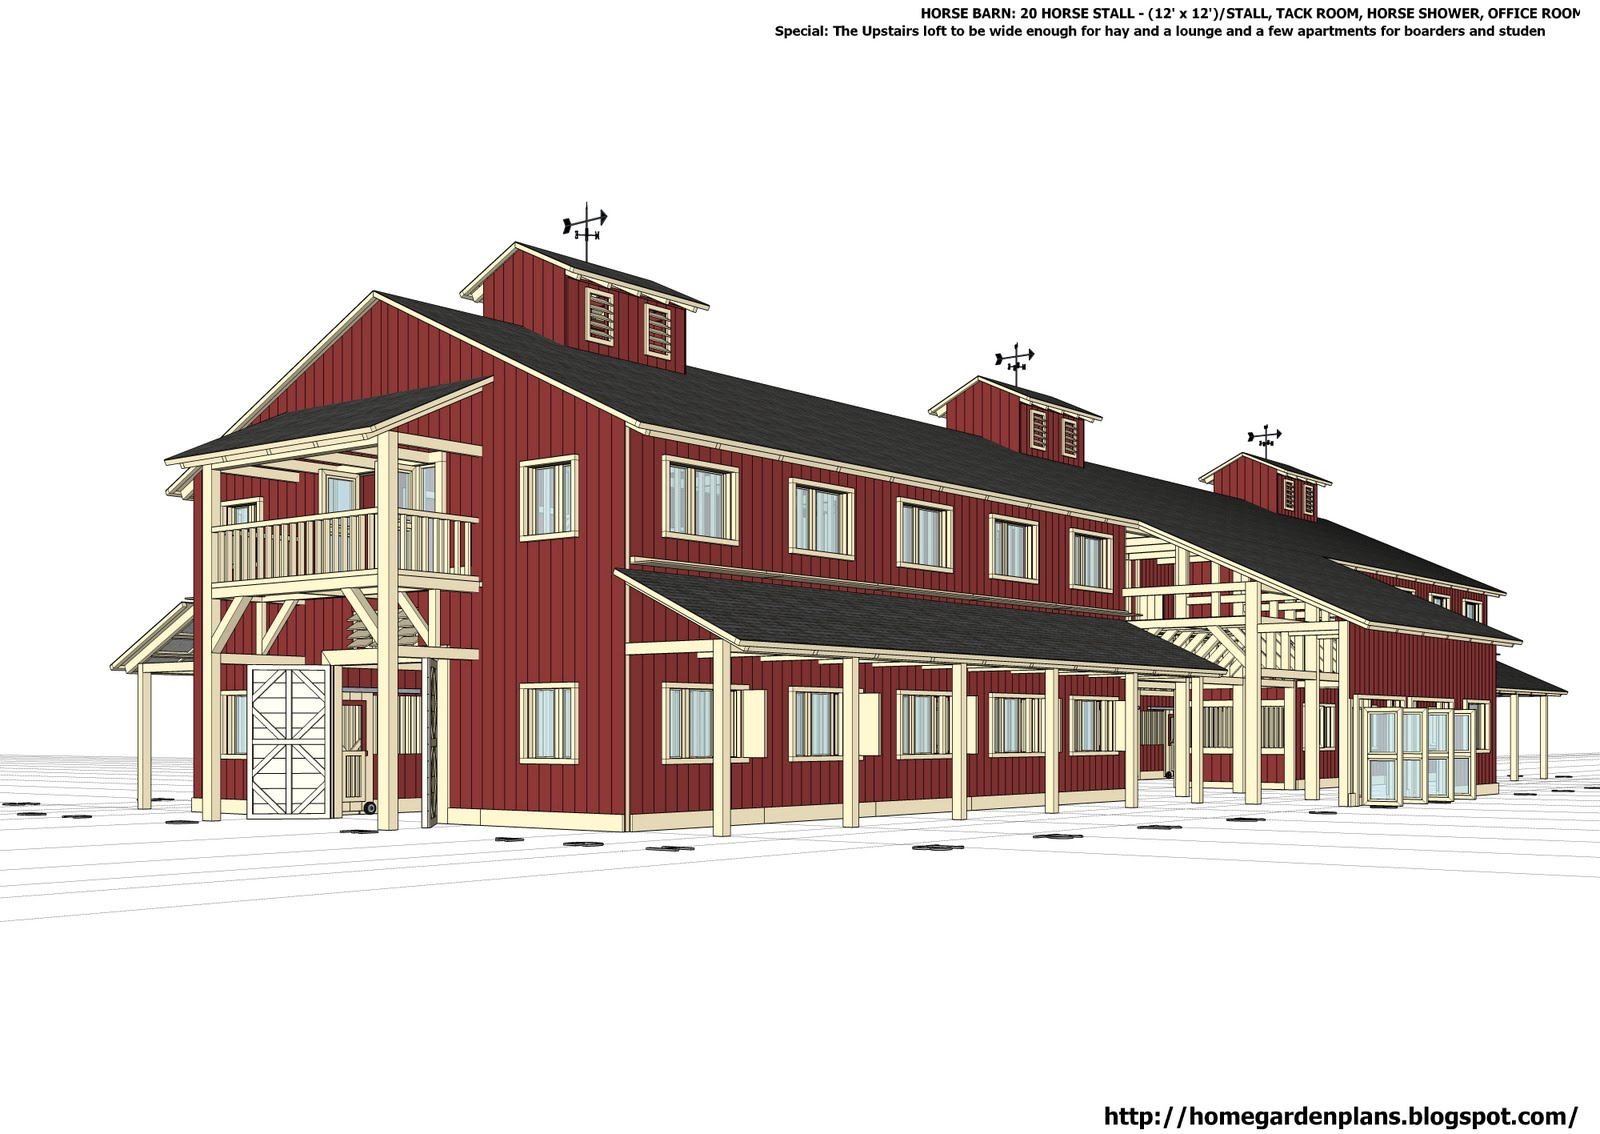 Home garden plans h20b1 20 stall horse barn plans for Horse barn designs